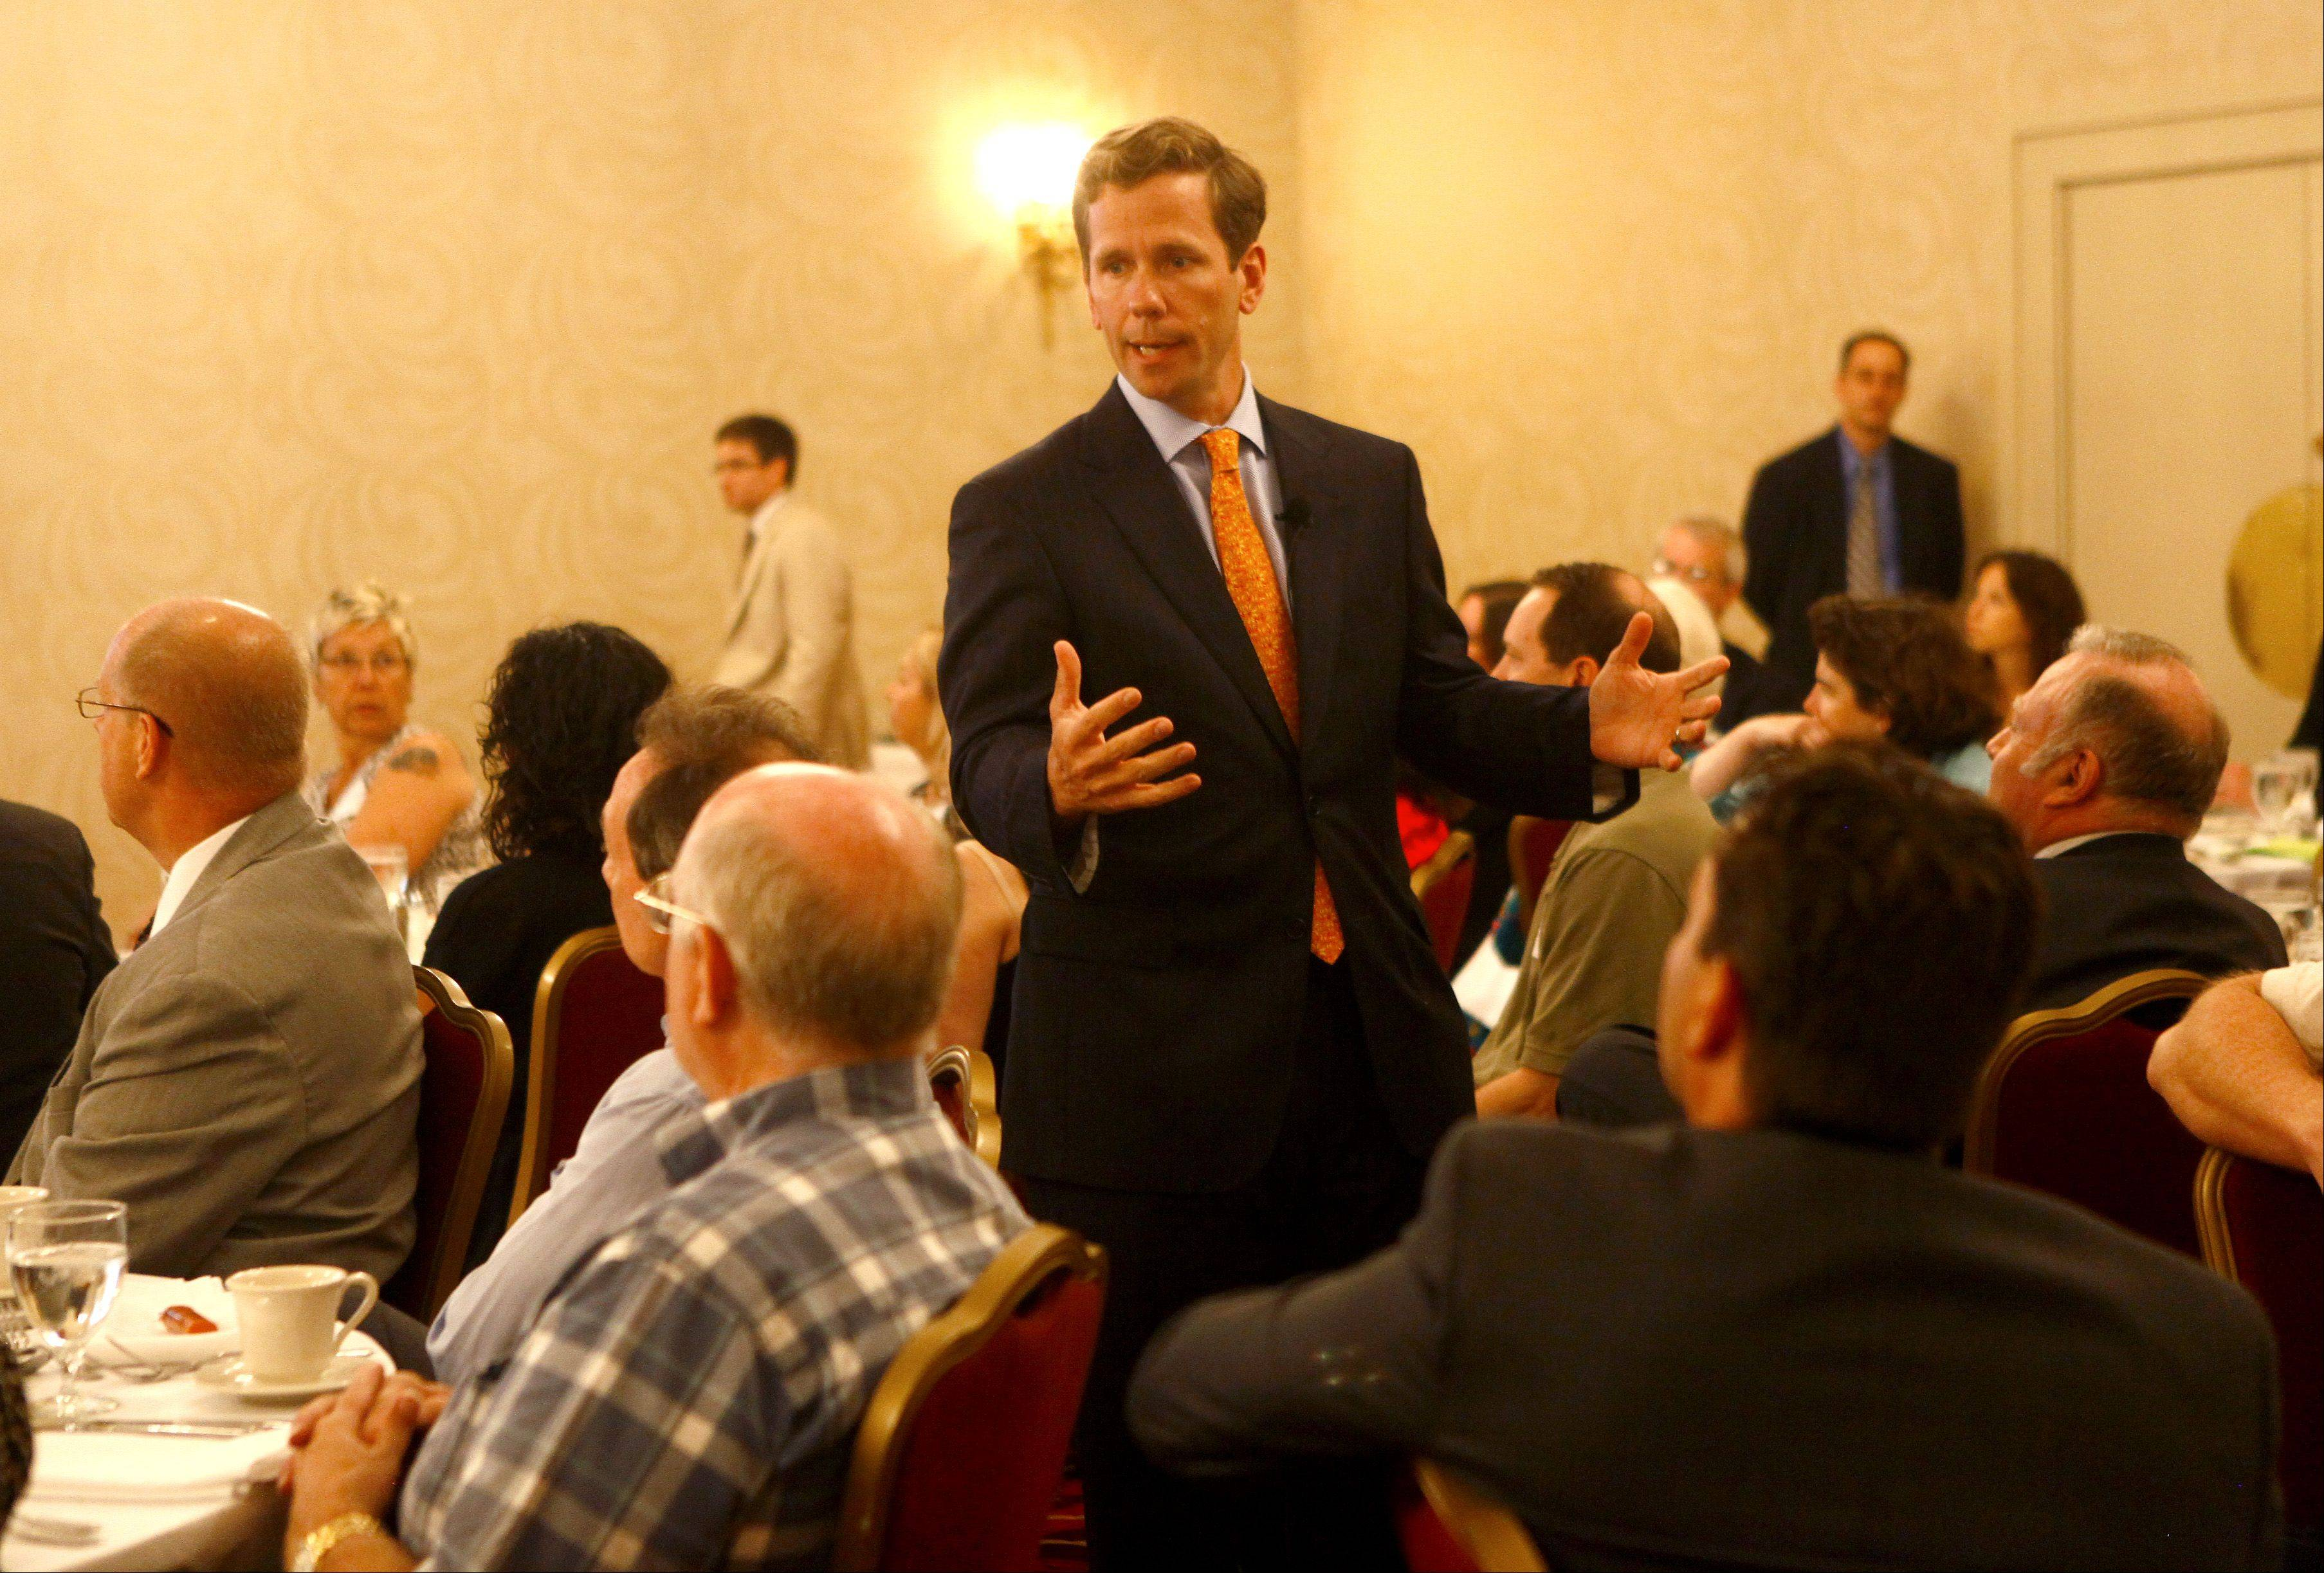 U.S. Rep. Robert Dold addresses the audience at the Multi-Chamber Legislative Lunch in Northbrook Monday.